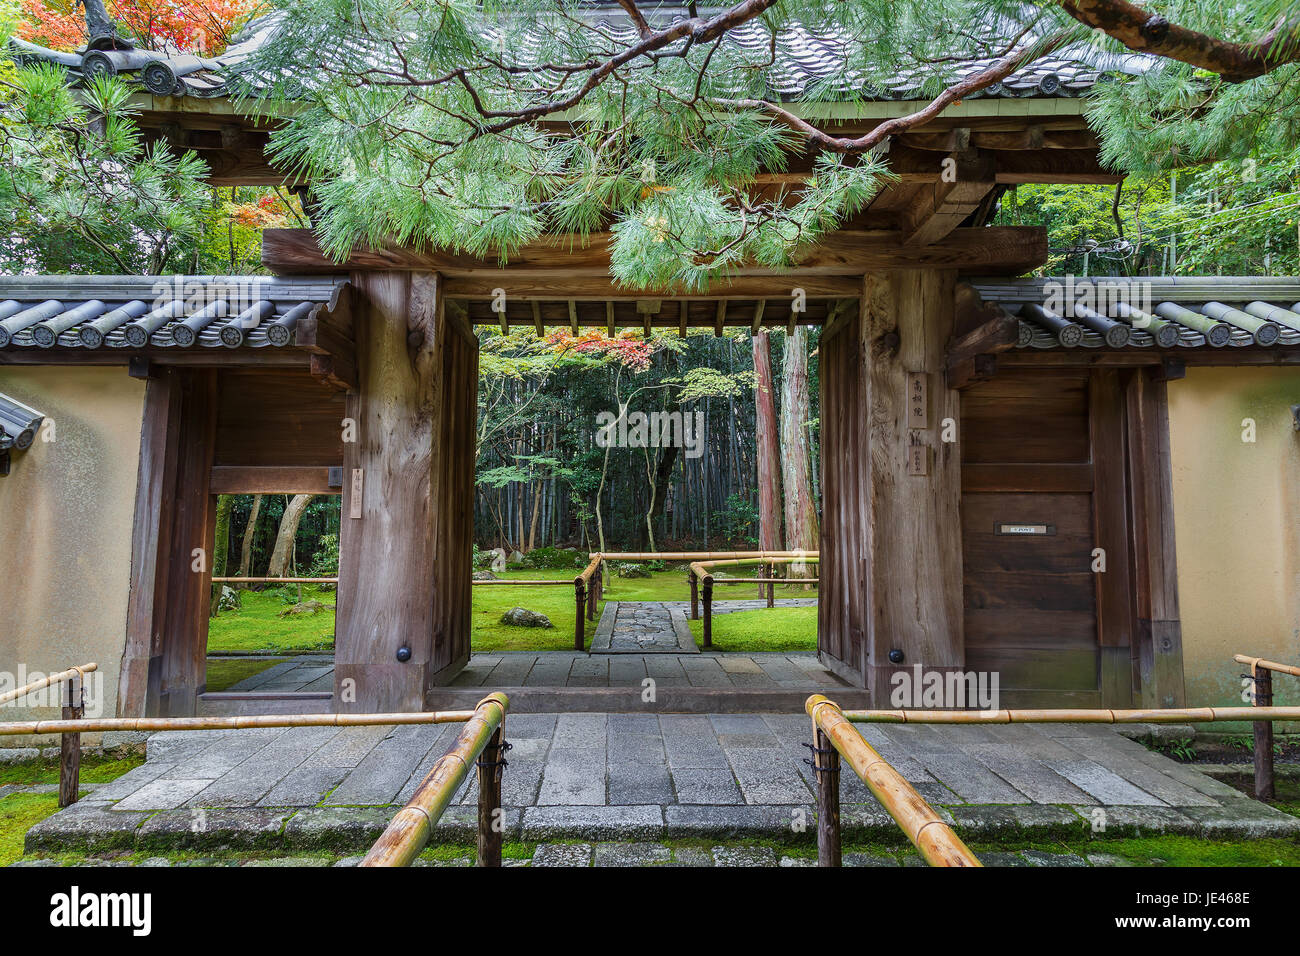 Koto-in Temple in Kyoto, Japan - Stock Image